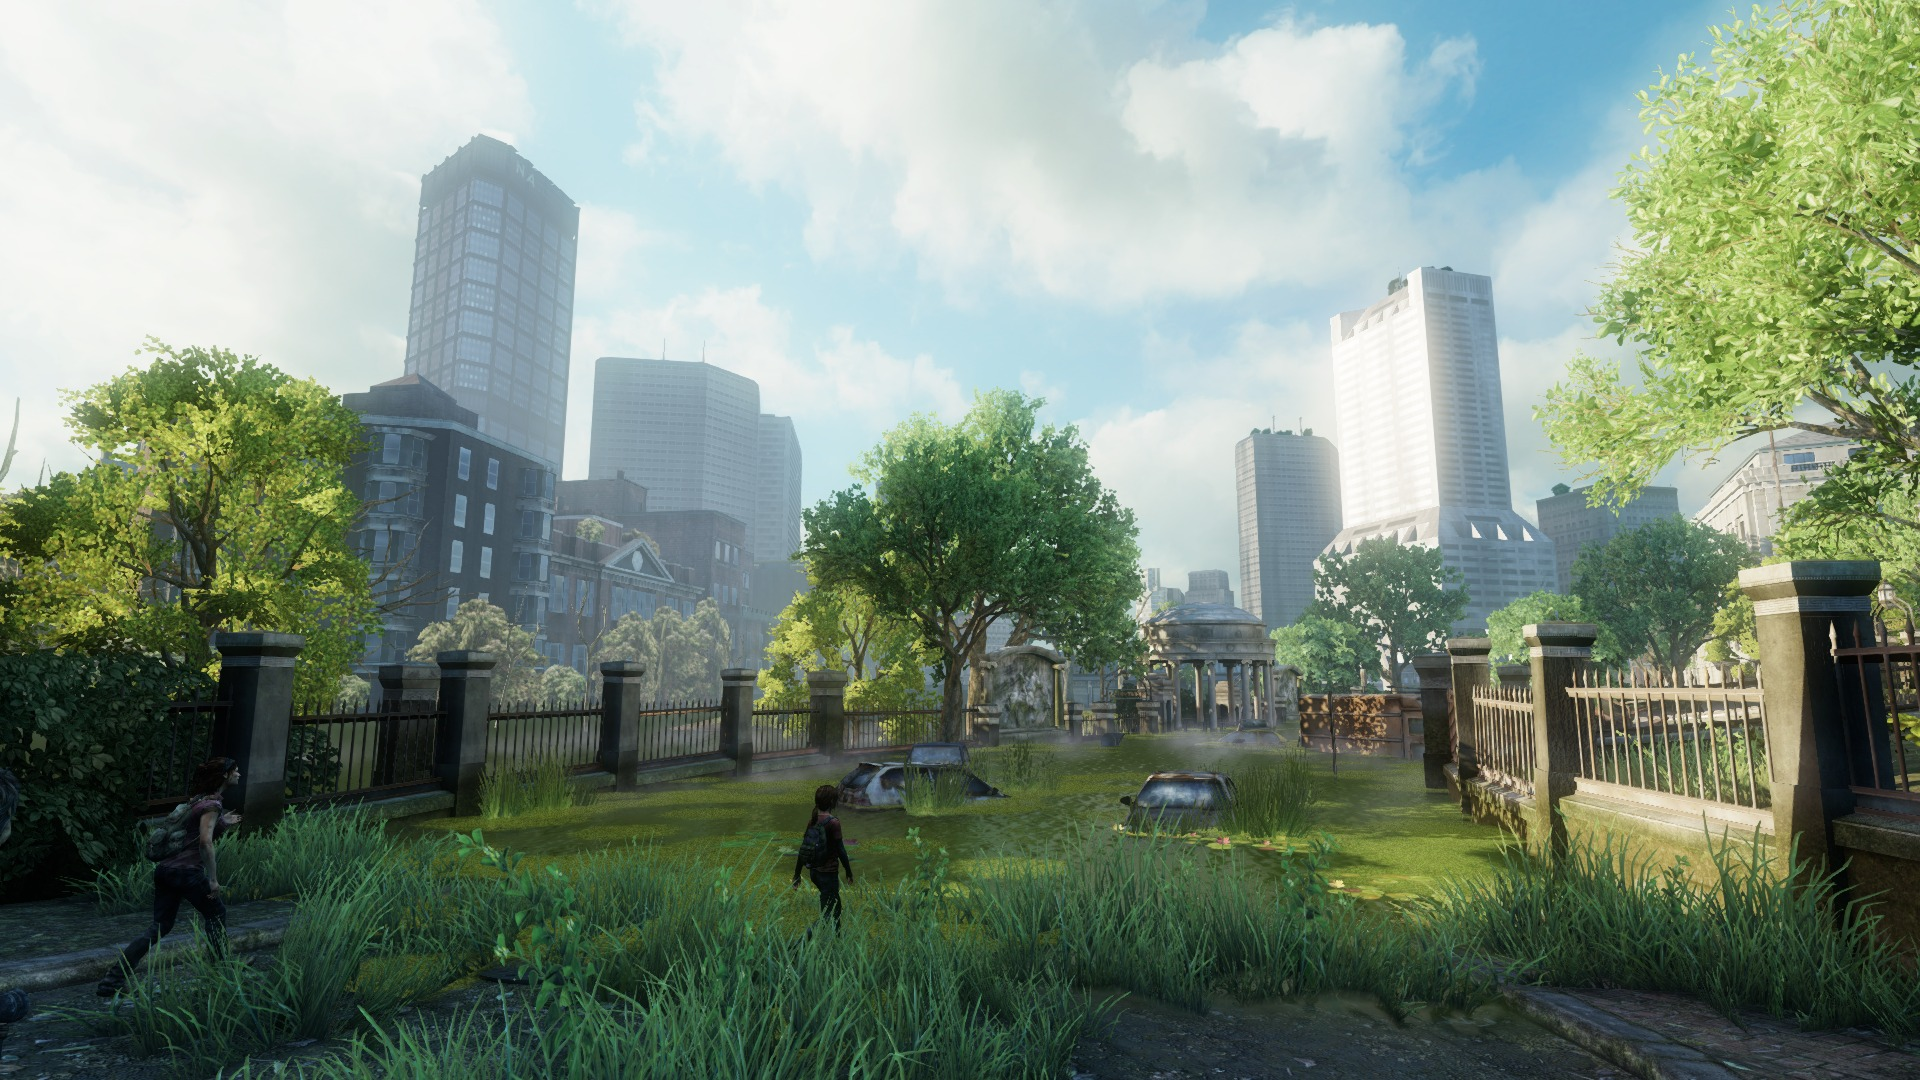 In Those Weeks I Will Be Working On Map That Will Connect To Real Locations In The Last Of Us Map Example